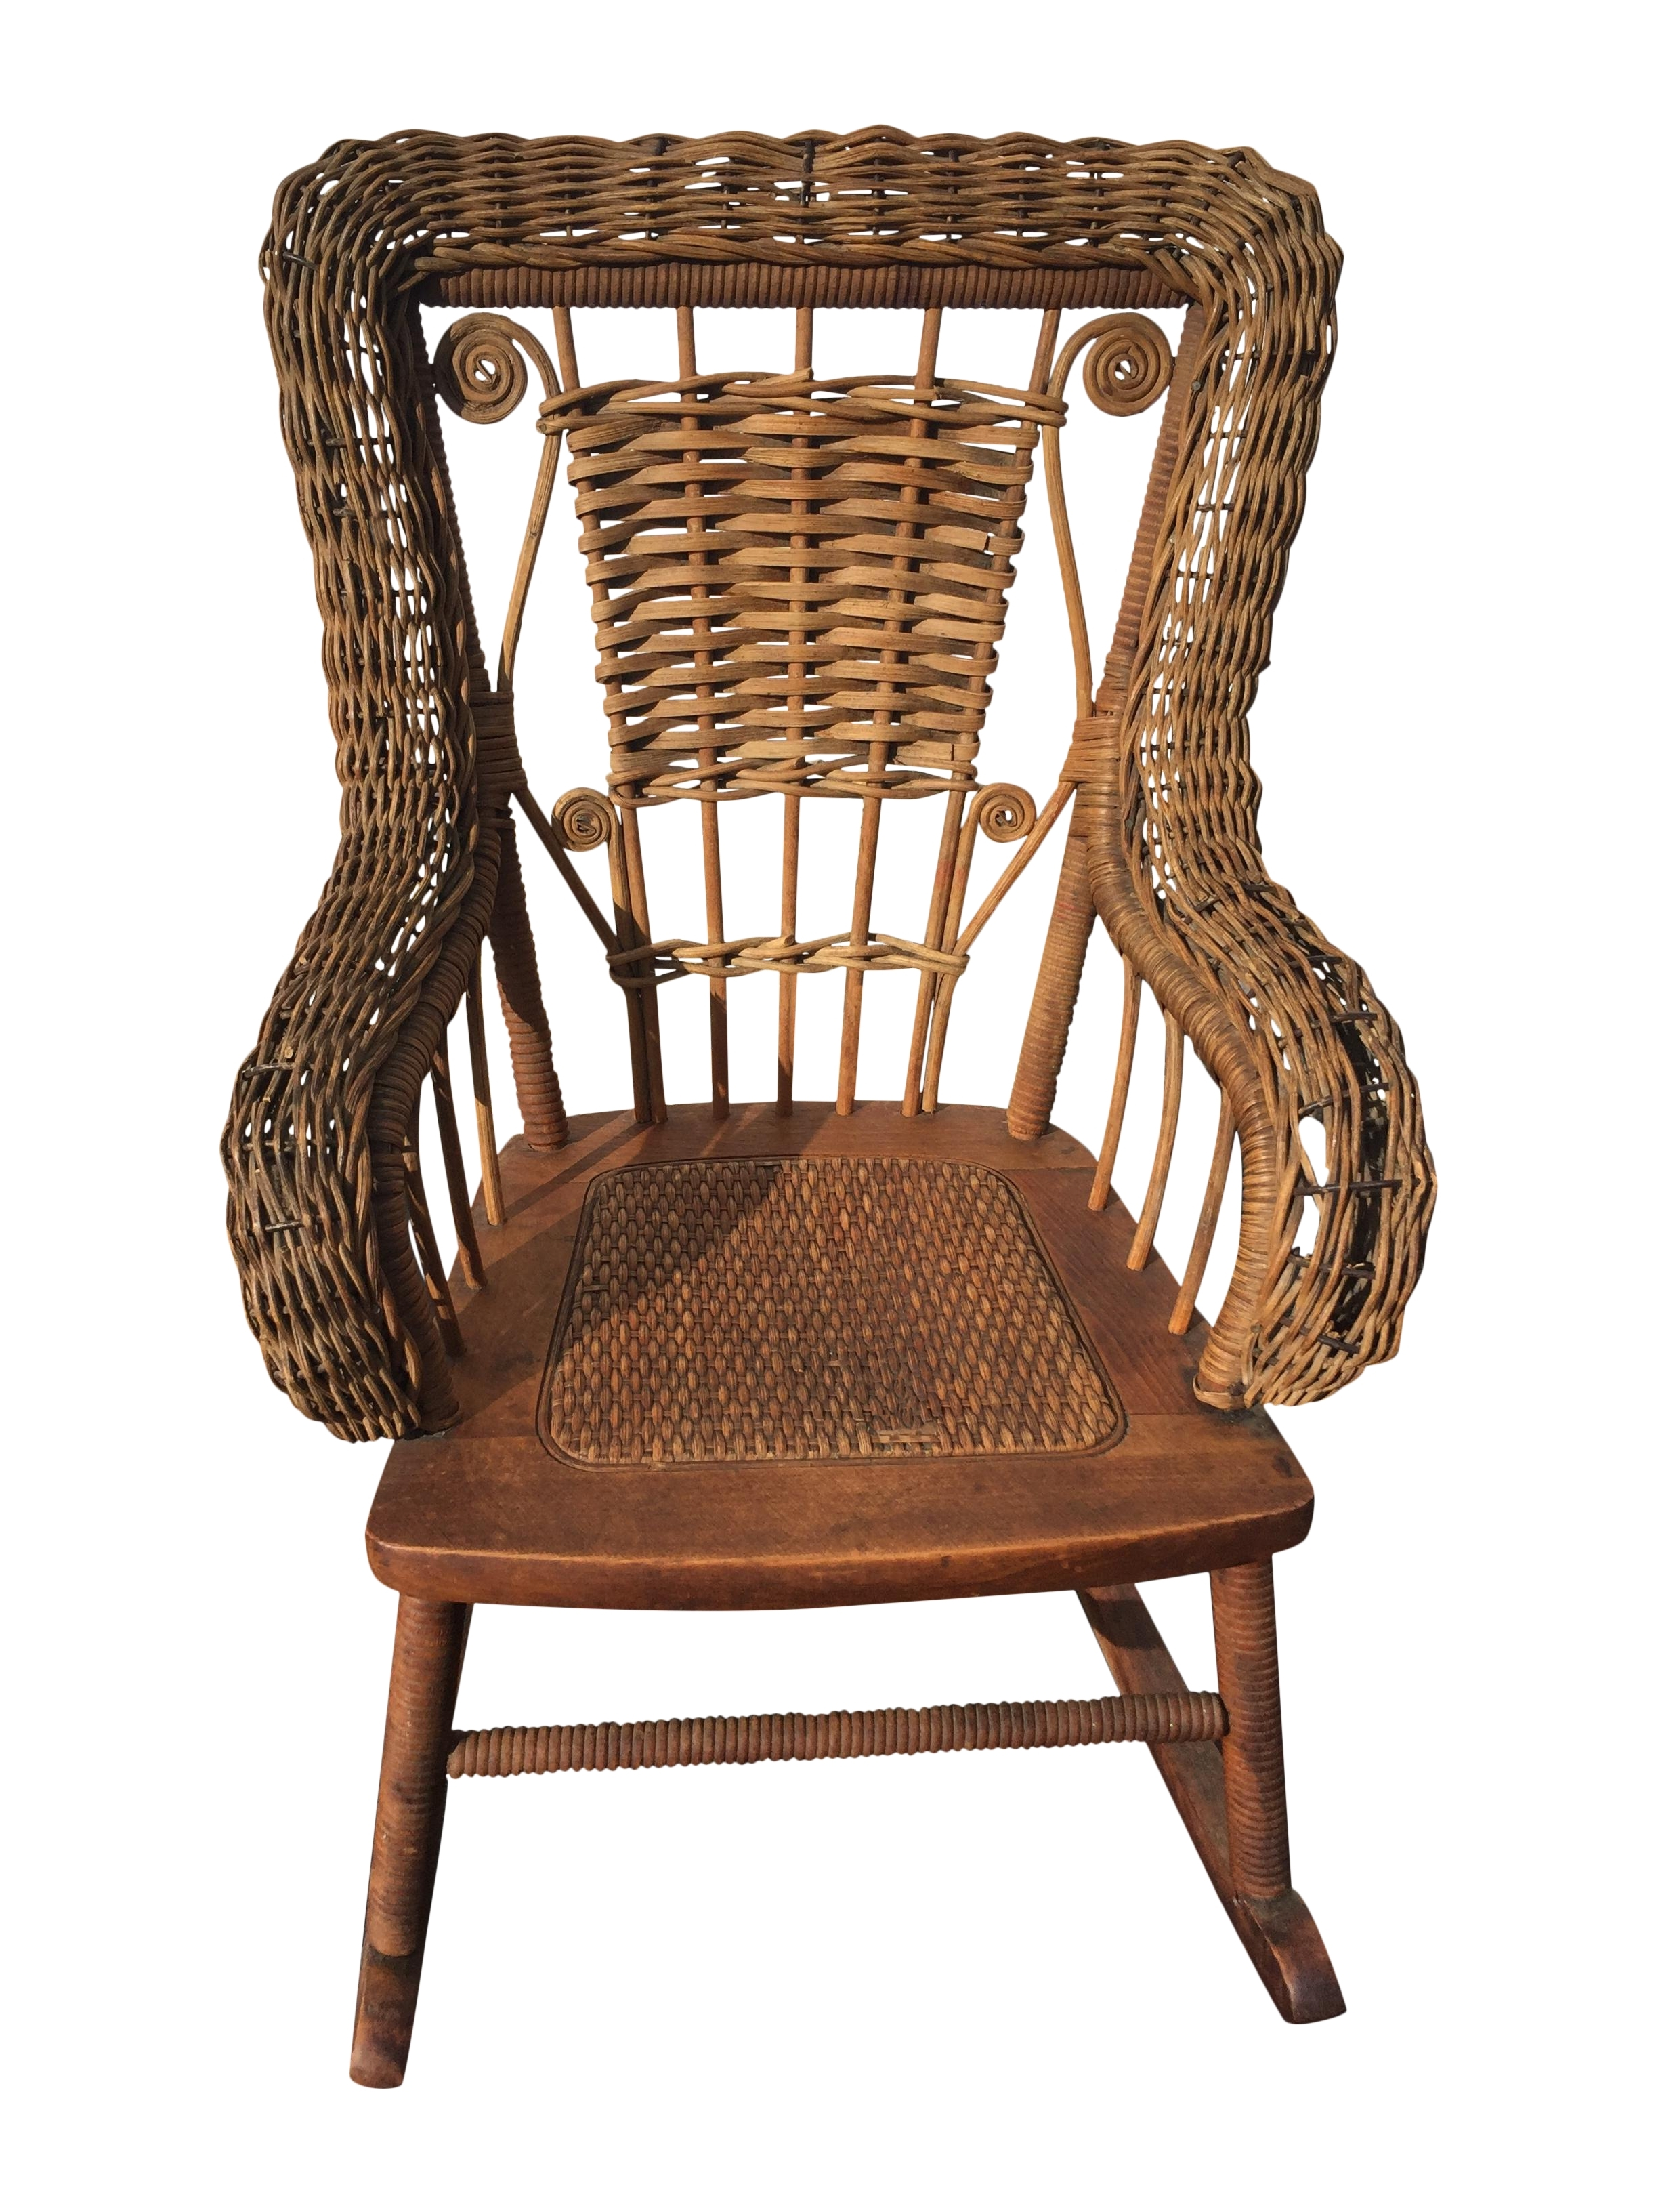 Well Liked Antique Wicker Rocking Chairs With Springs For Chair Design Ideas Best Vintage Wicker Chairs Home Antique Cane (View 19 of 20)